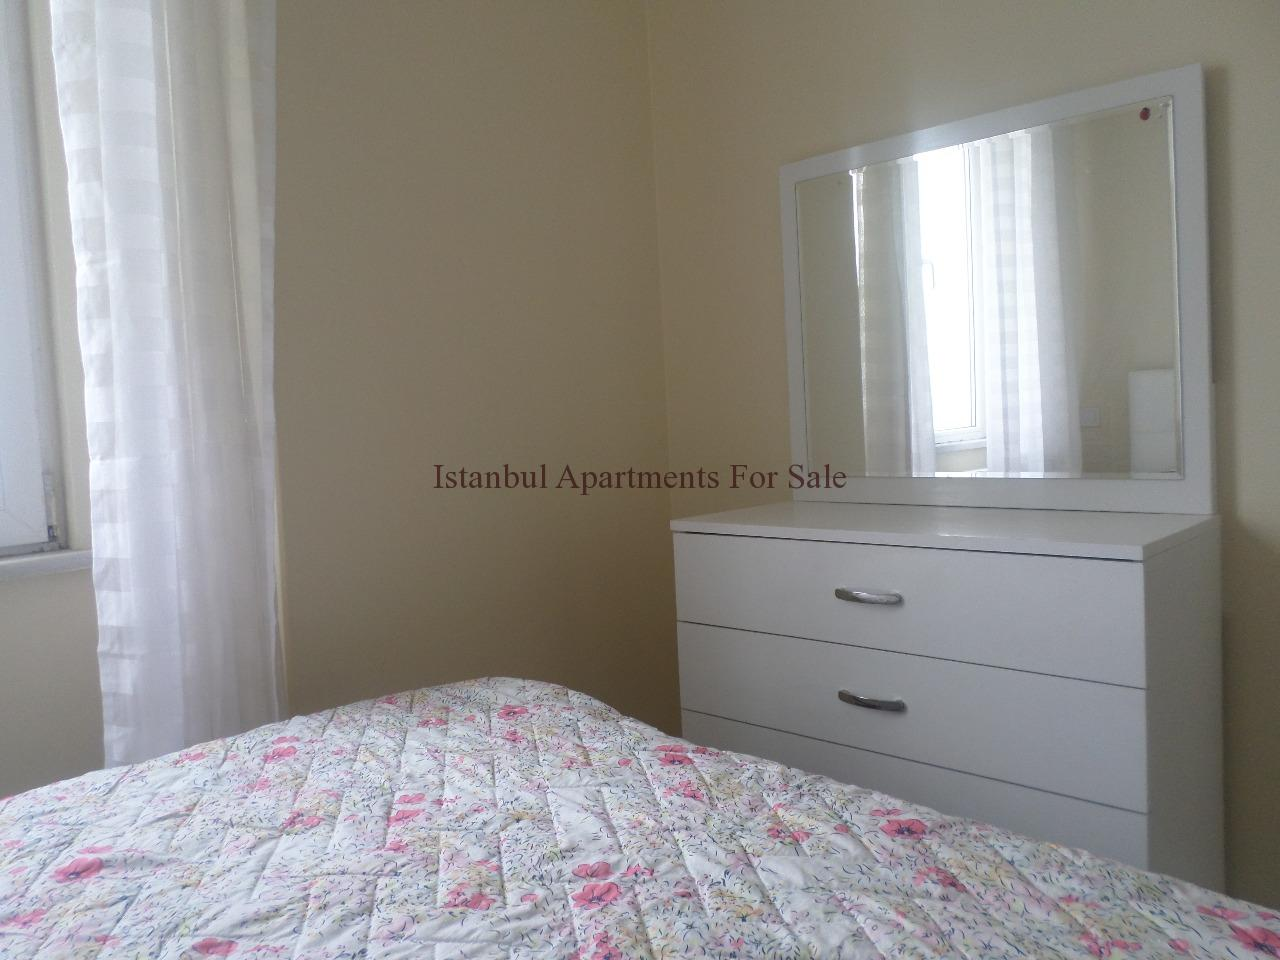 Cheap Furnished One Bedroom Property To Buy Istanbul Istanbul Apartments For Sale In Turkey